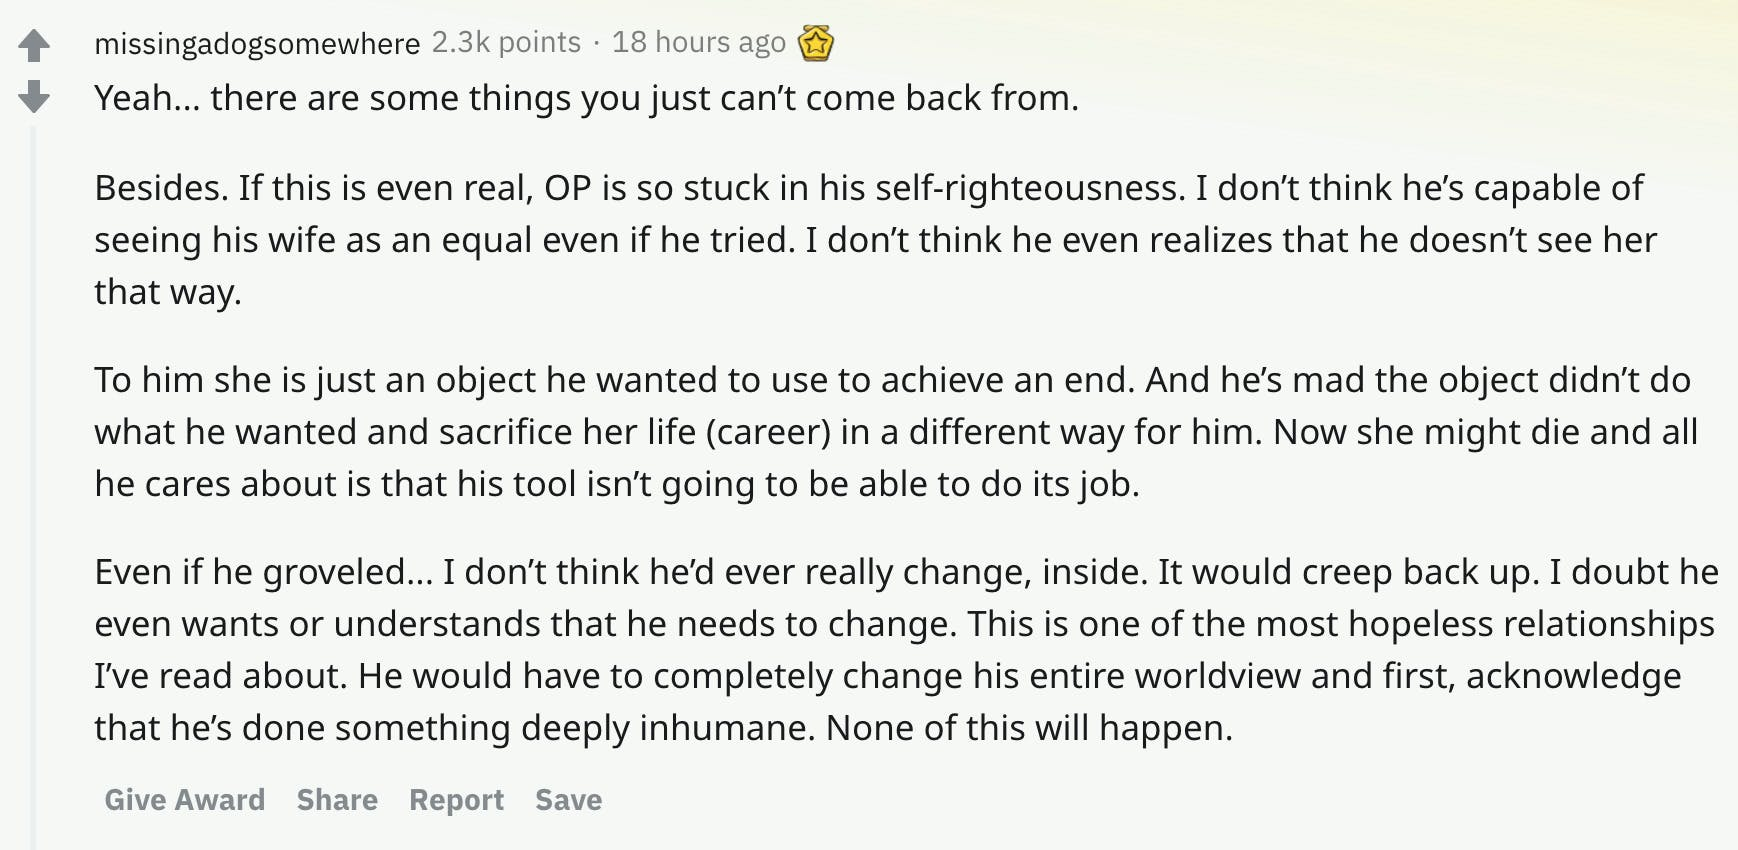 Yeah... there are some things you just can't come back from.  Besides. If this is even real, OP is so stuck in his self-righteousness. I don't think he's capable of seeing his wife as an equal even if he tried. I don't think he even realizes that he doesn't see her that way.  To him she is just an object he wanted to use to achieve an end. And he's mad the object didn't do what he wanted and sacrifice her life (career) in a different way for him. Now she might die and all he cares about is that his tool isn't going to be able to do its job.  Even if he groveled... I don't think he'd ever really change, inside. It would creep back up. I doubt he even wants or understands that he needs to change. This is one of the most hopeless relationships I've read about. He would have to completely change his entire worldview and first, acknowledge that he's done something deeply inhumane. None of this will happen.